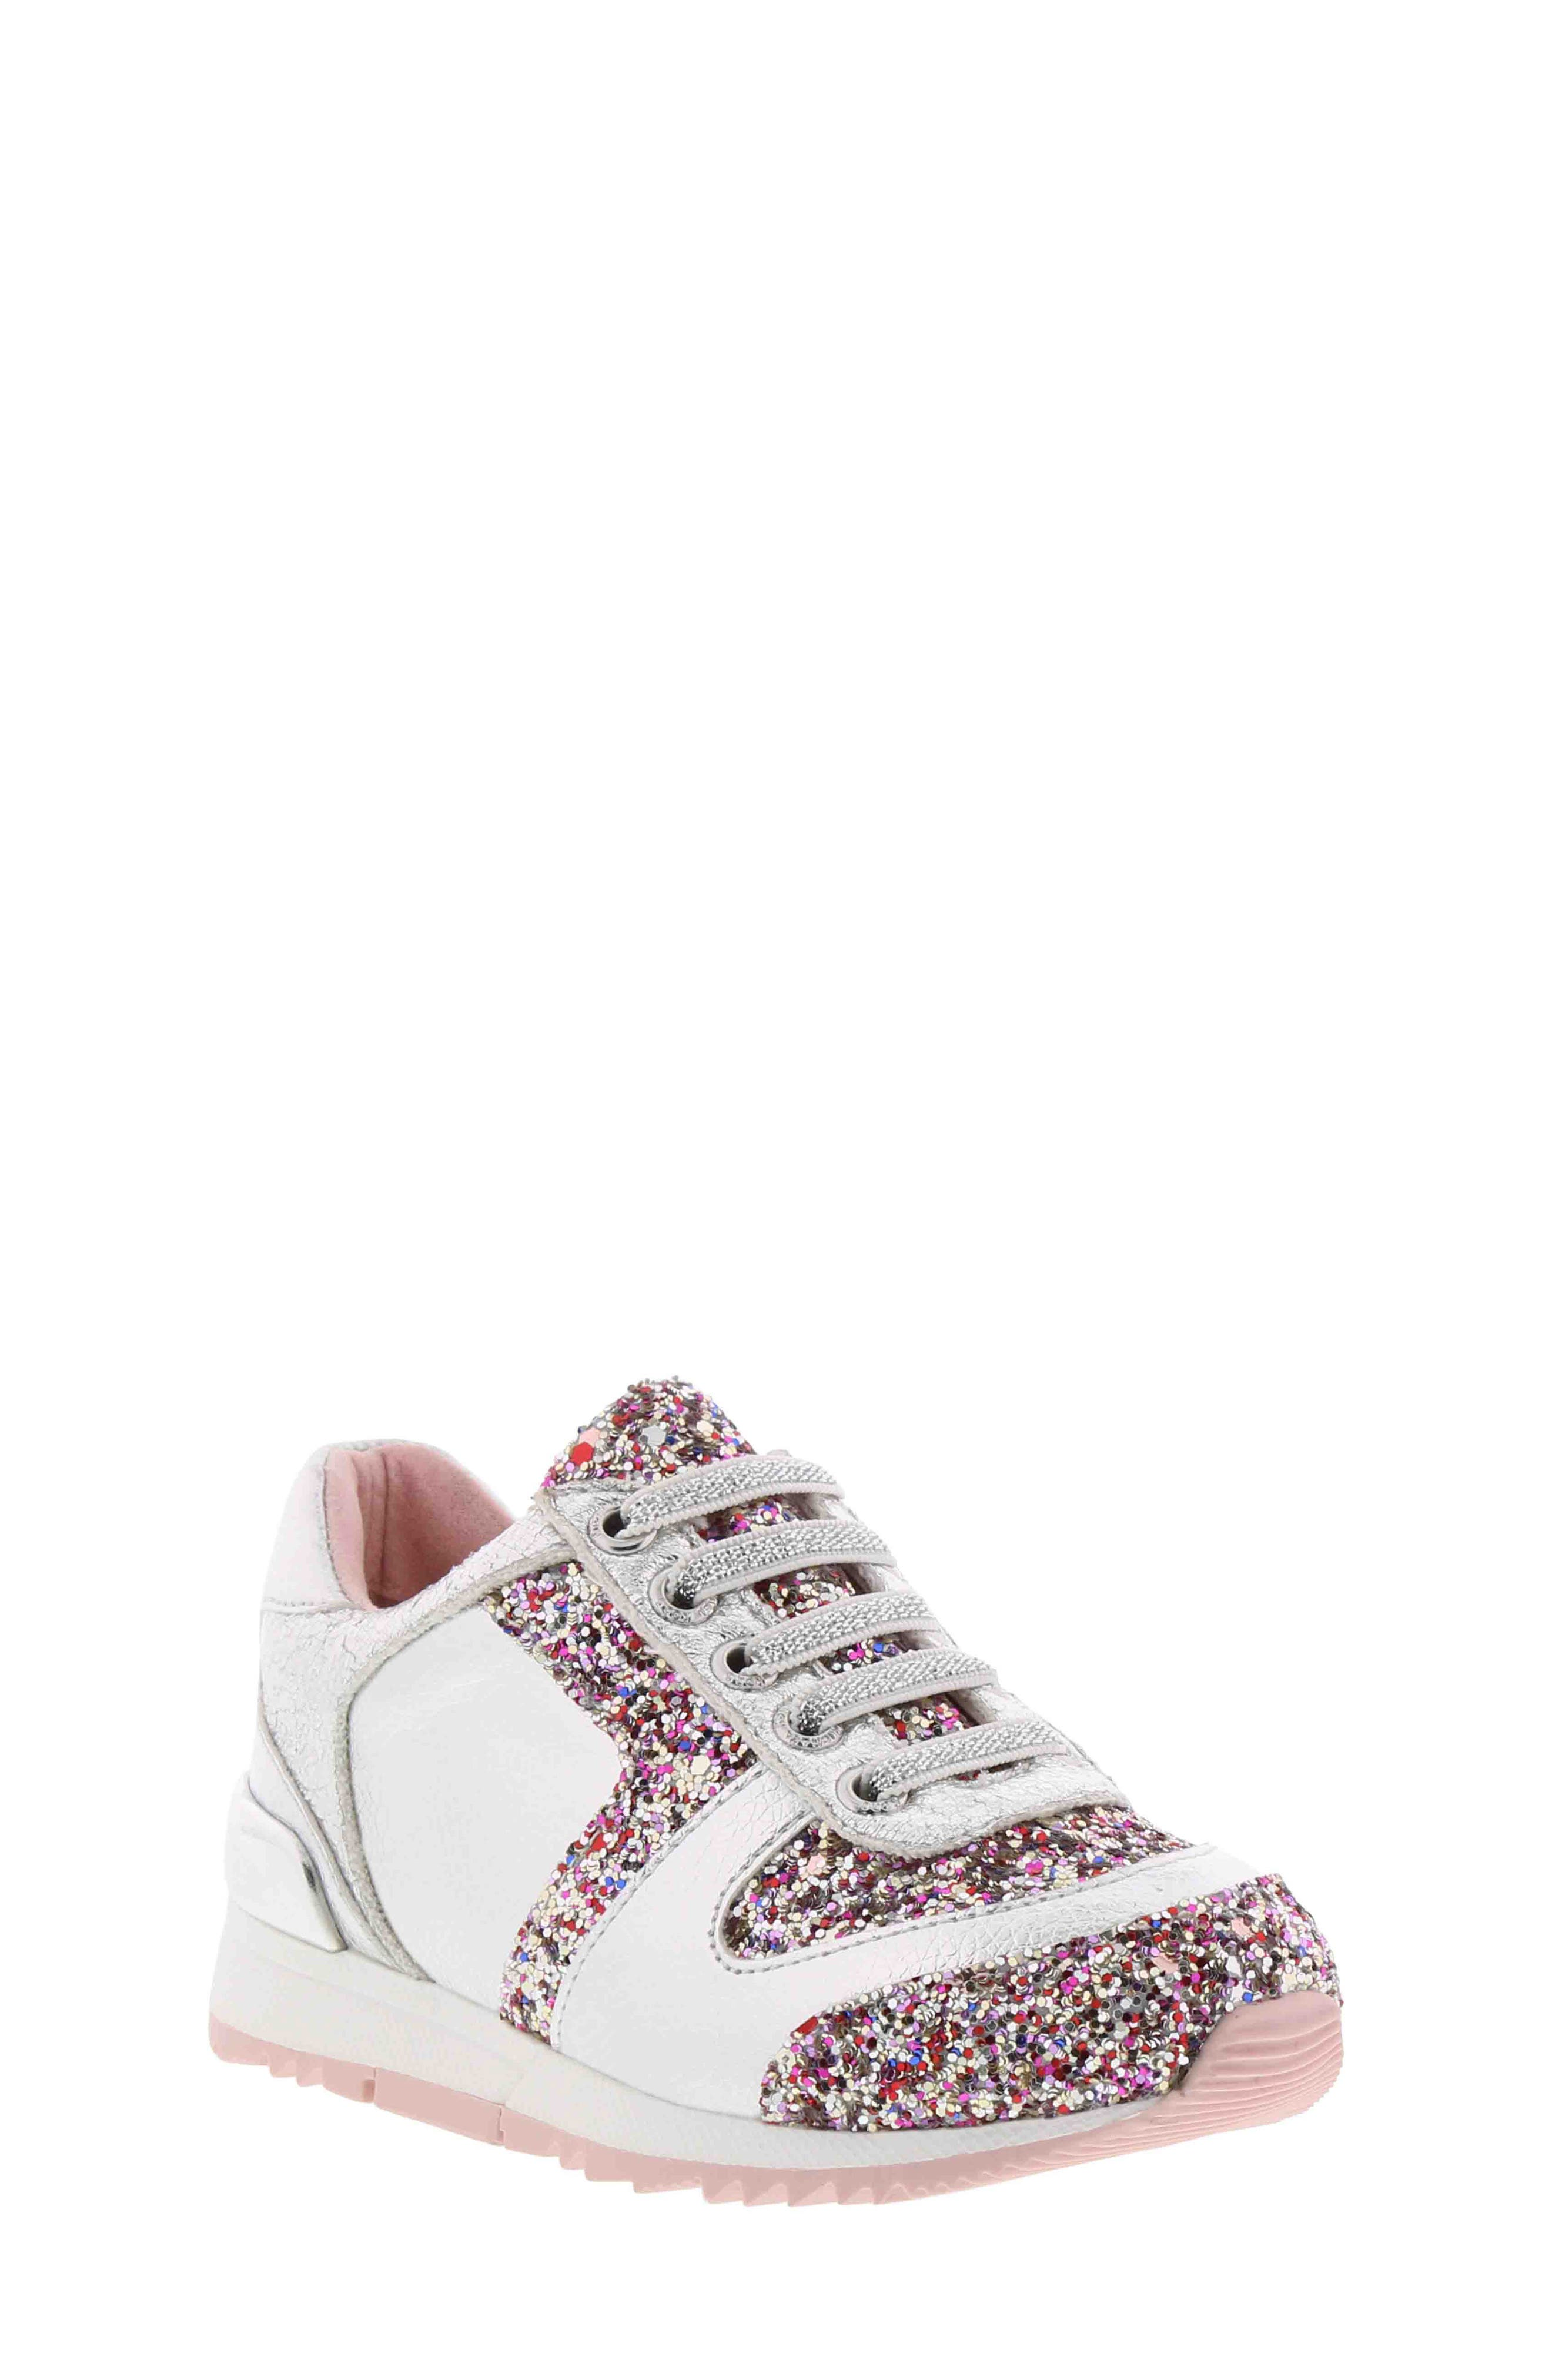 Allie Beatz Glitter Sneaker,                             Main thumbnail 1, color,                             SILVER MULTI